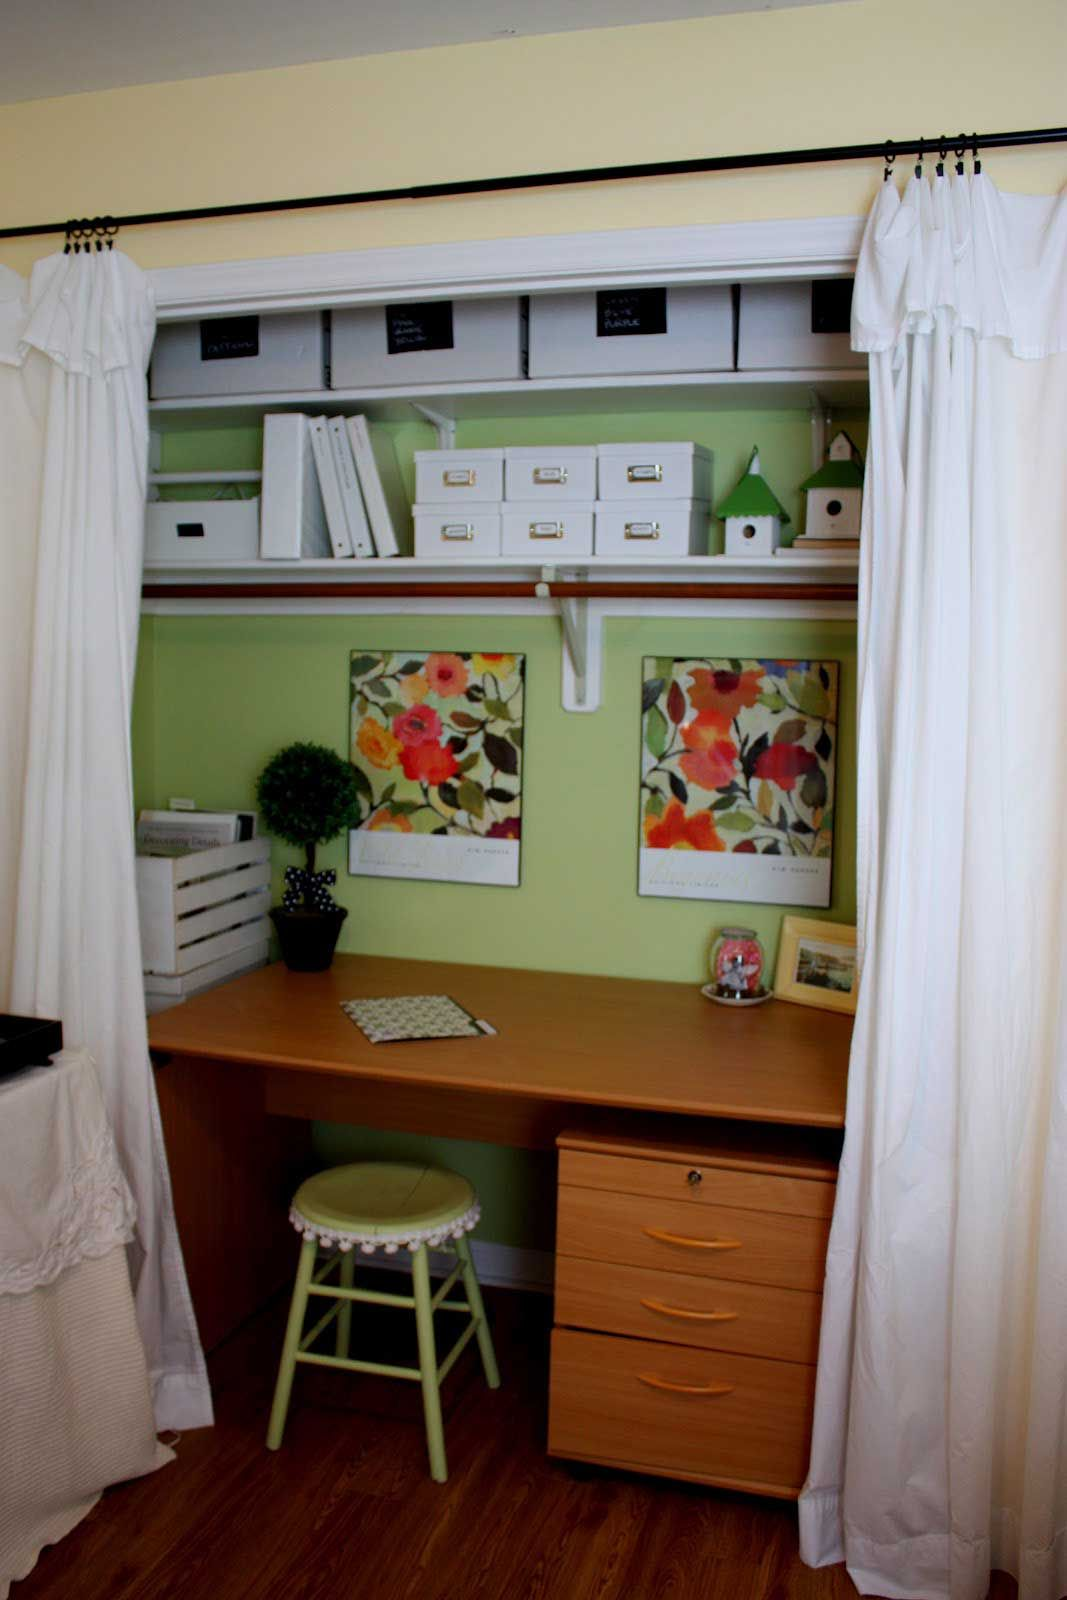 Magnificent 10 Best Images About Closet Office On Pinterest Office Spaces Largest Home Design Picture Inspirations Pitcheantrous